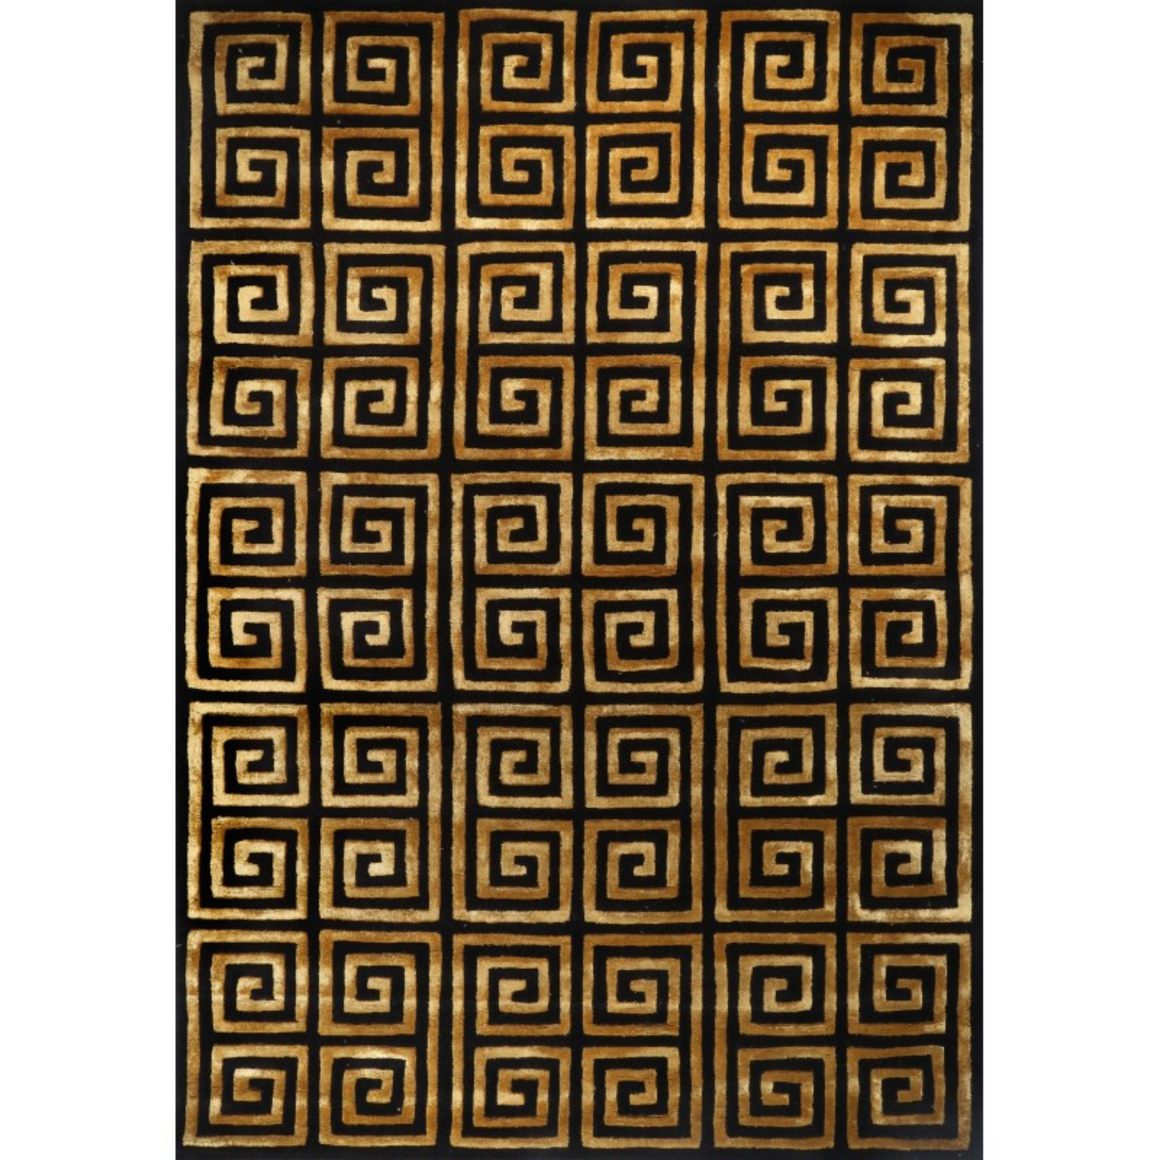 VERSACE STYLE BLACK GOLD HAND TUFTED RUG